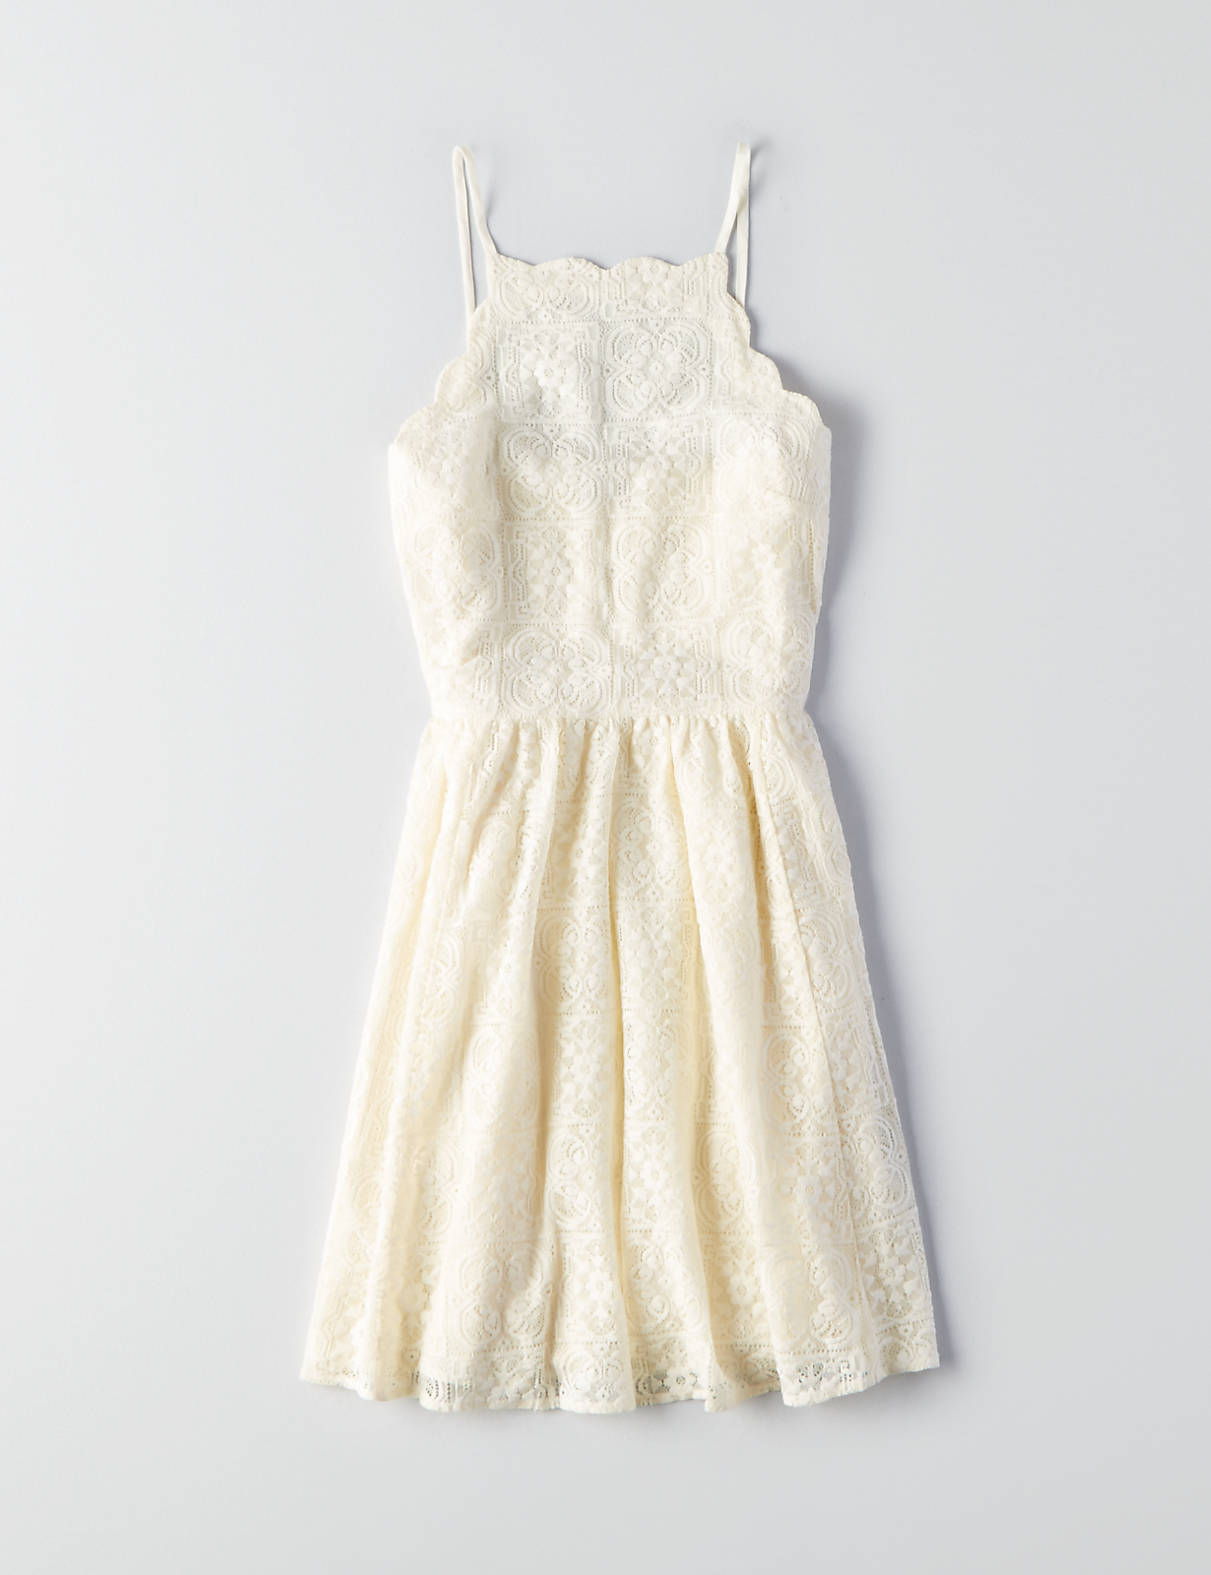 955f6ab4a76 AEO Scallop Lace Fit & Flare Dress, Cream | American Eagle Outfitters